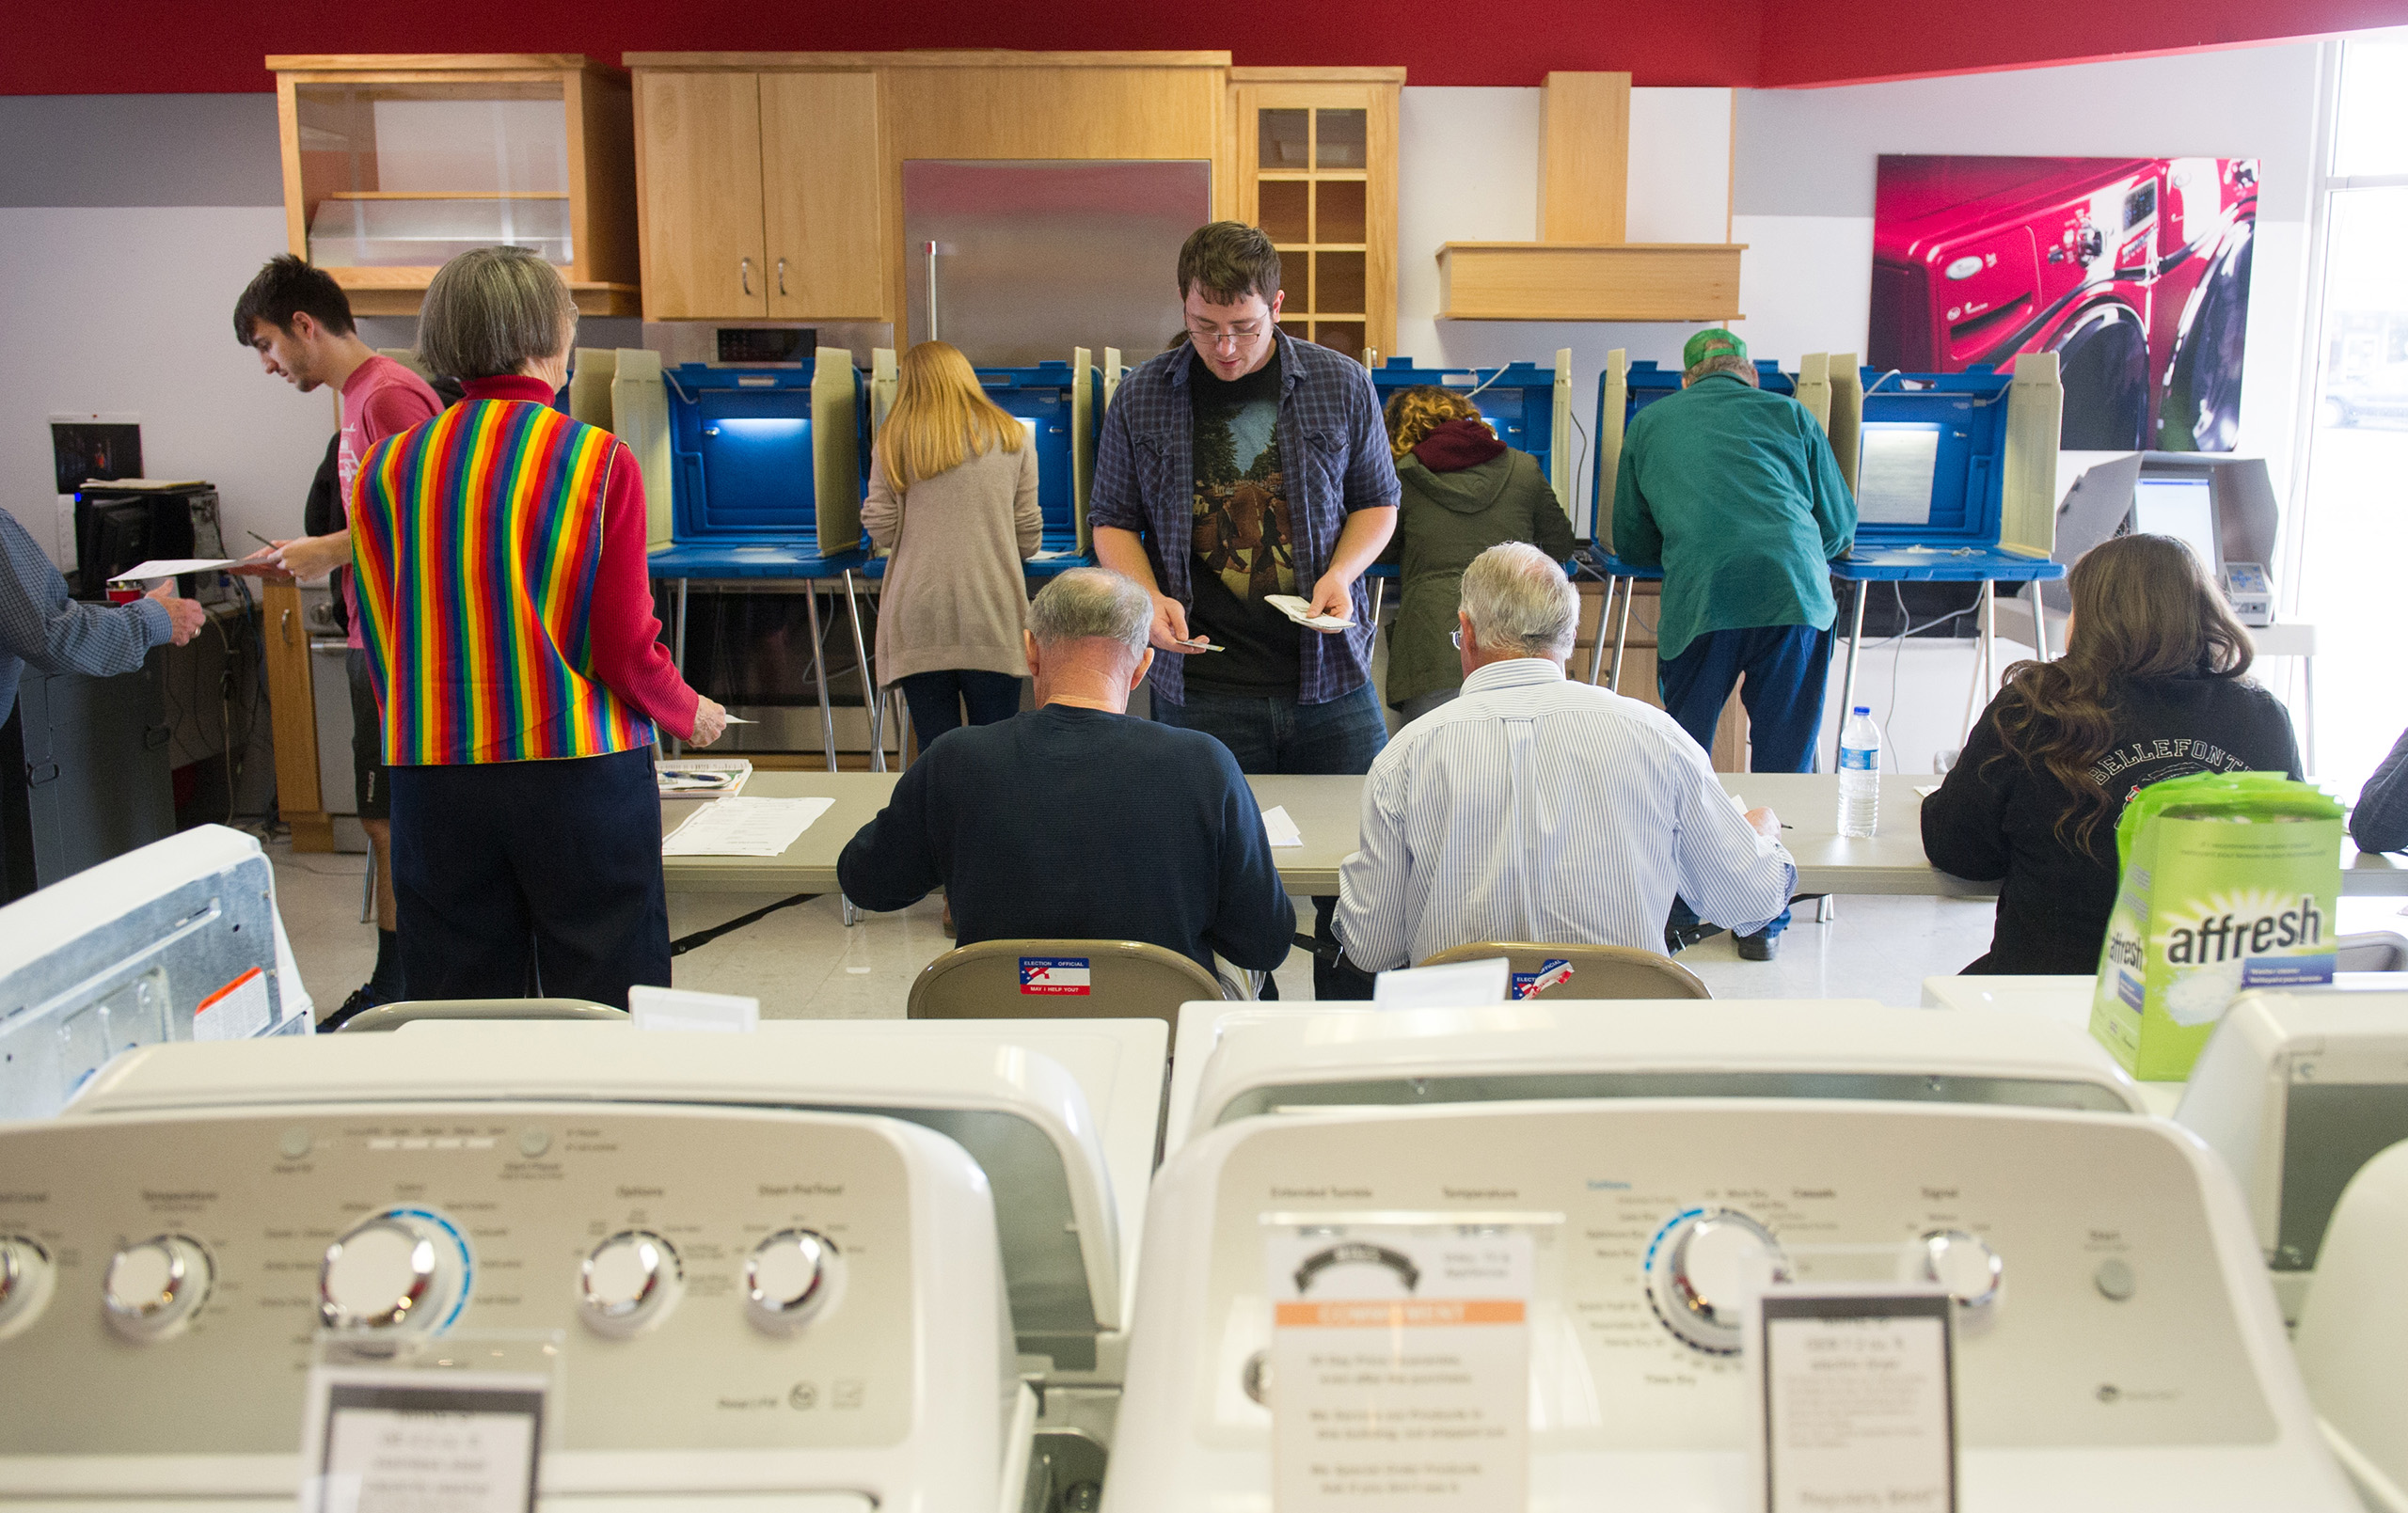 Voters cast their ballots in a polling location inside Mike's TV and Appliance  Nov. 8, 2016 in State College, Pennsylvania.